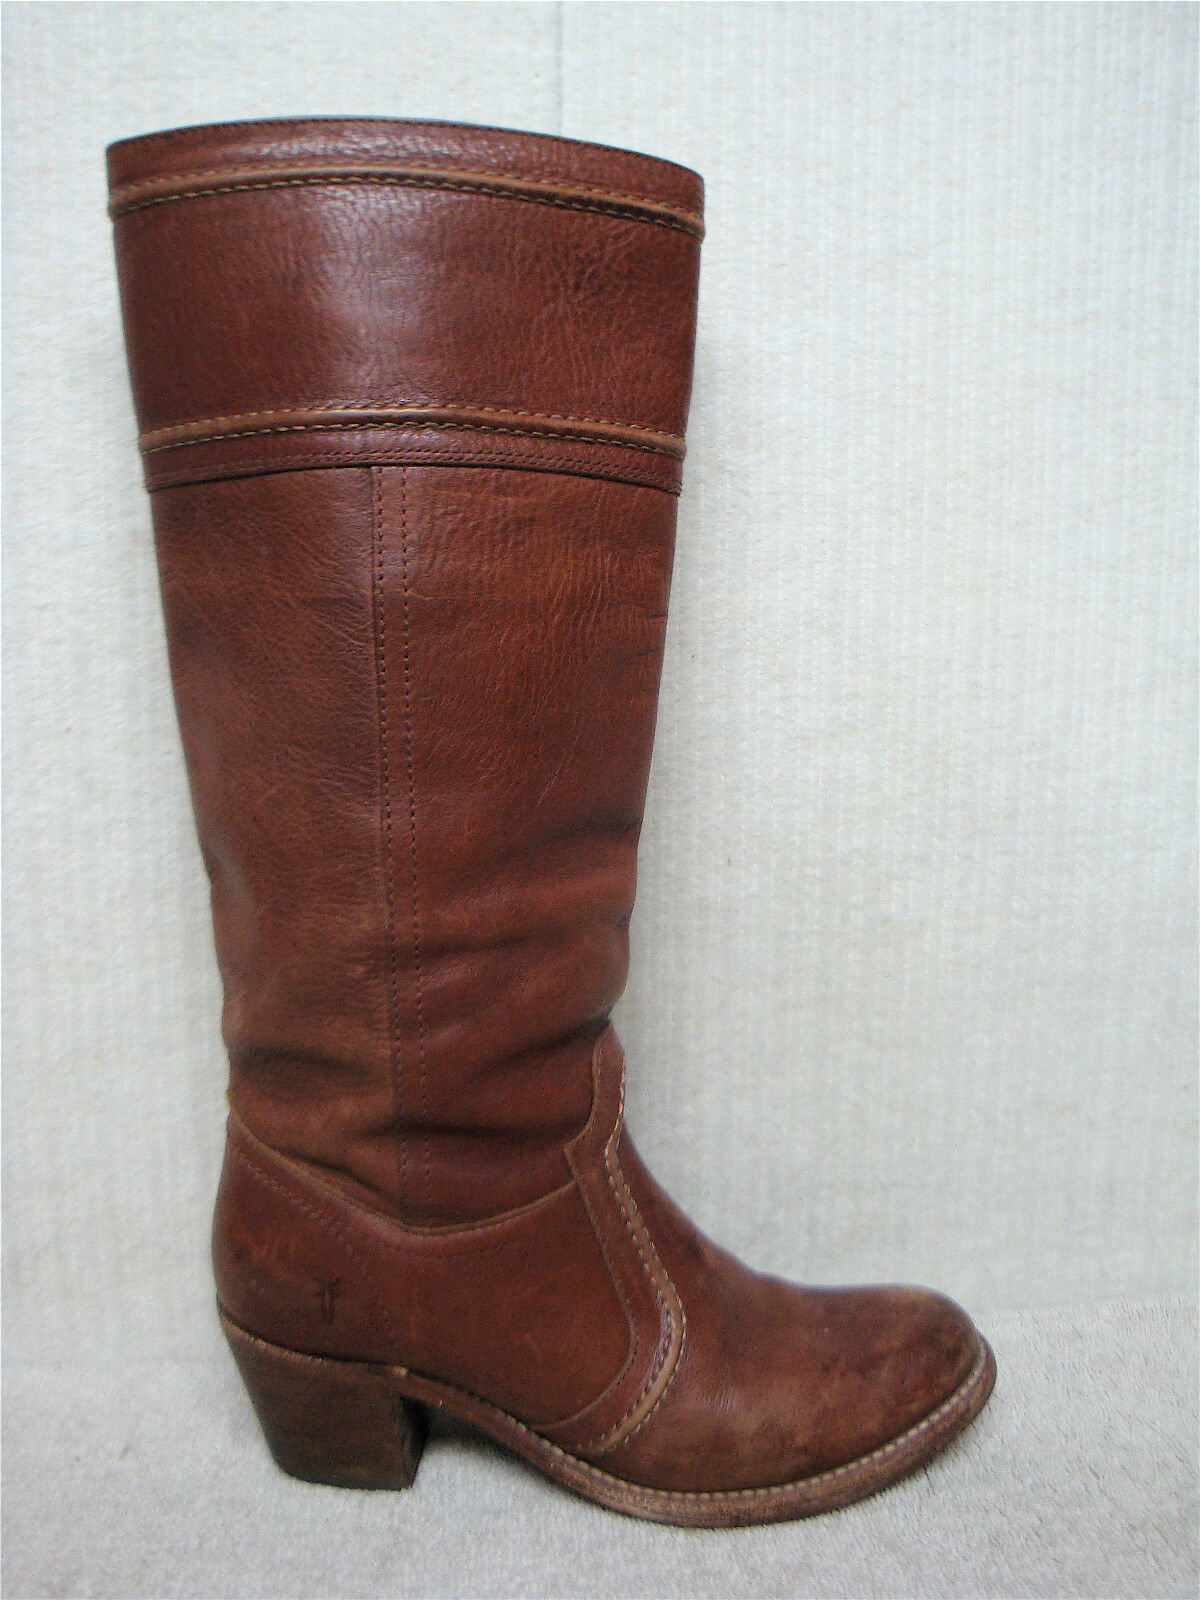 FRYE  - Jane Stitch - 77230 - Women's Brown Leather Boots - MSRP  328